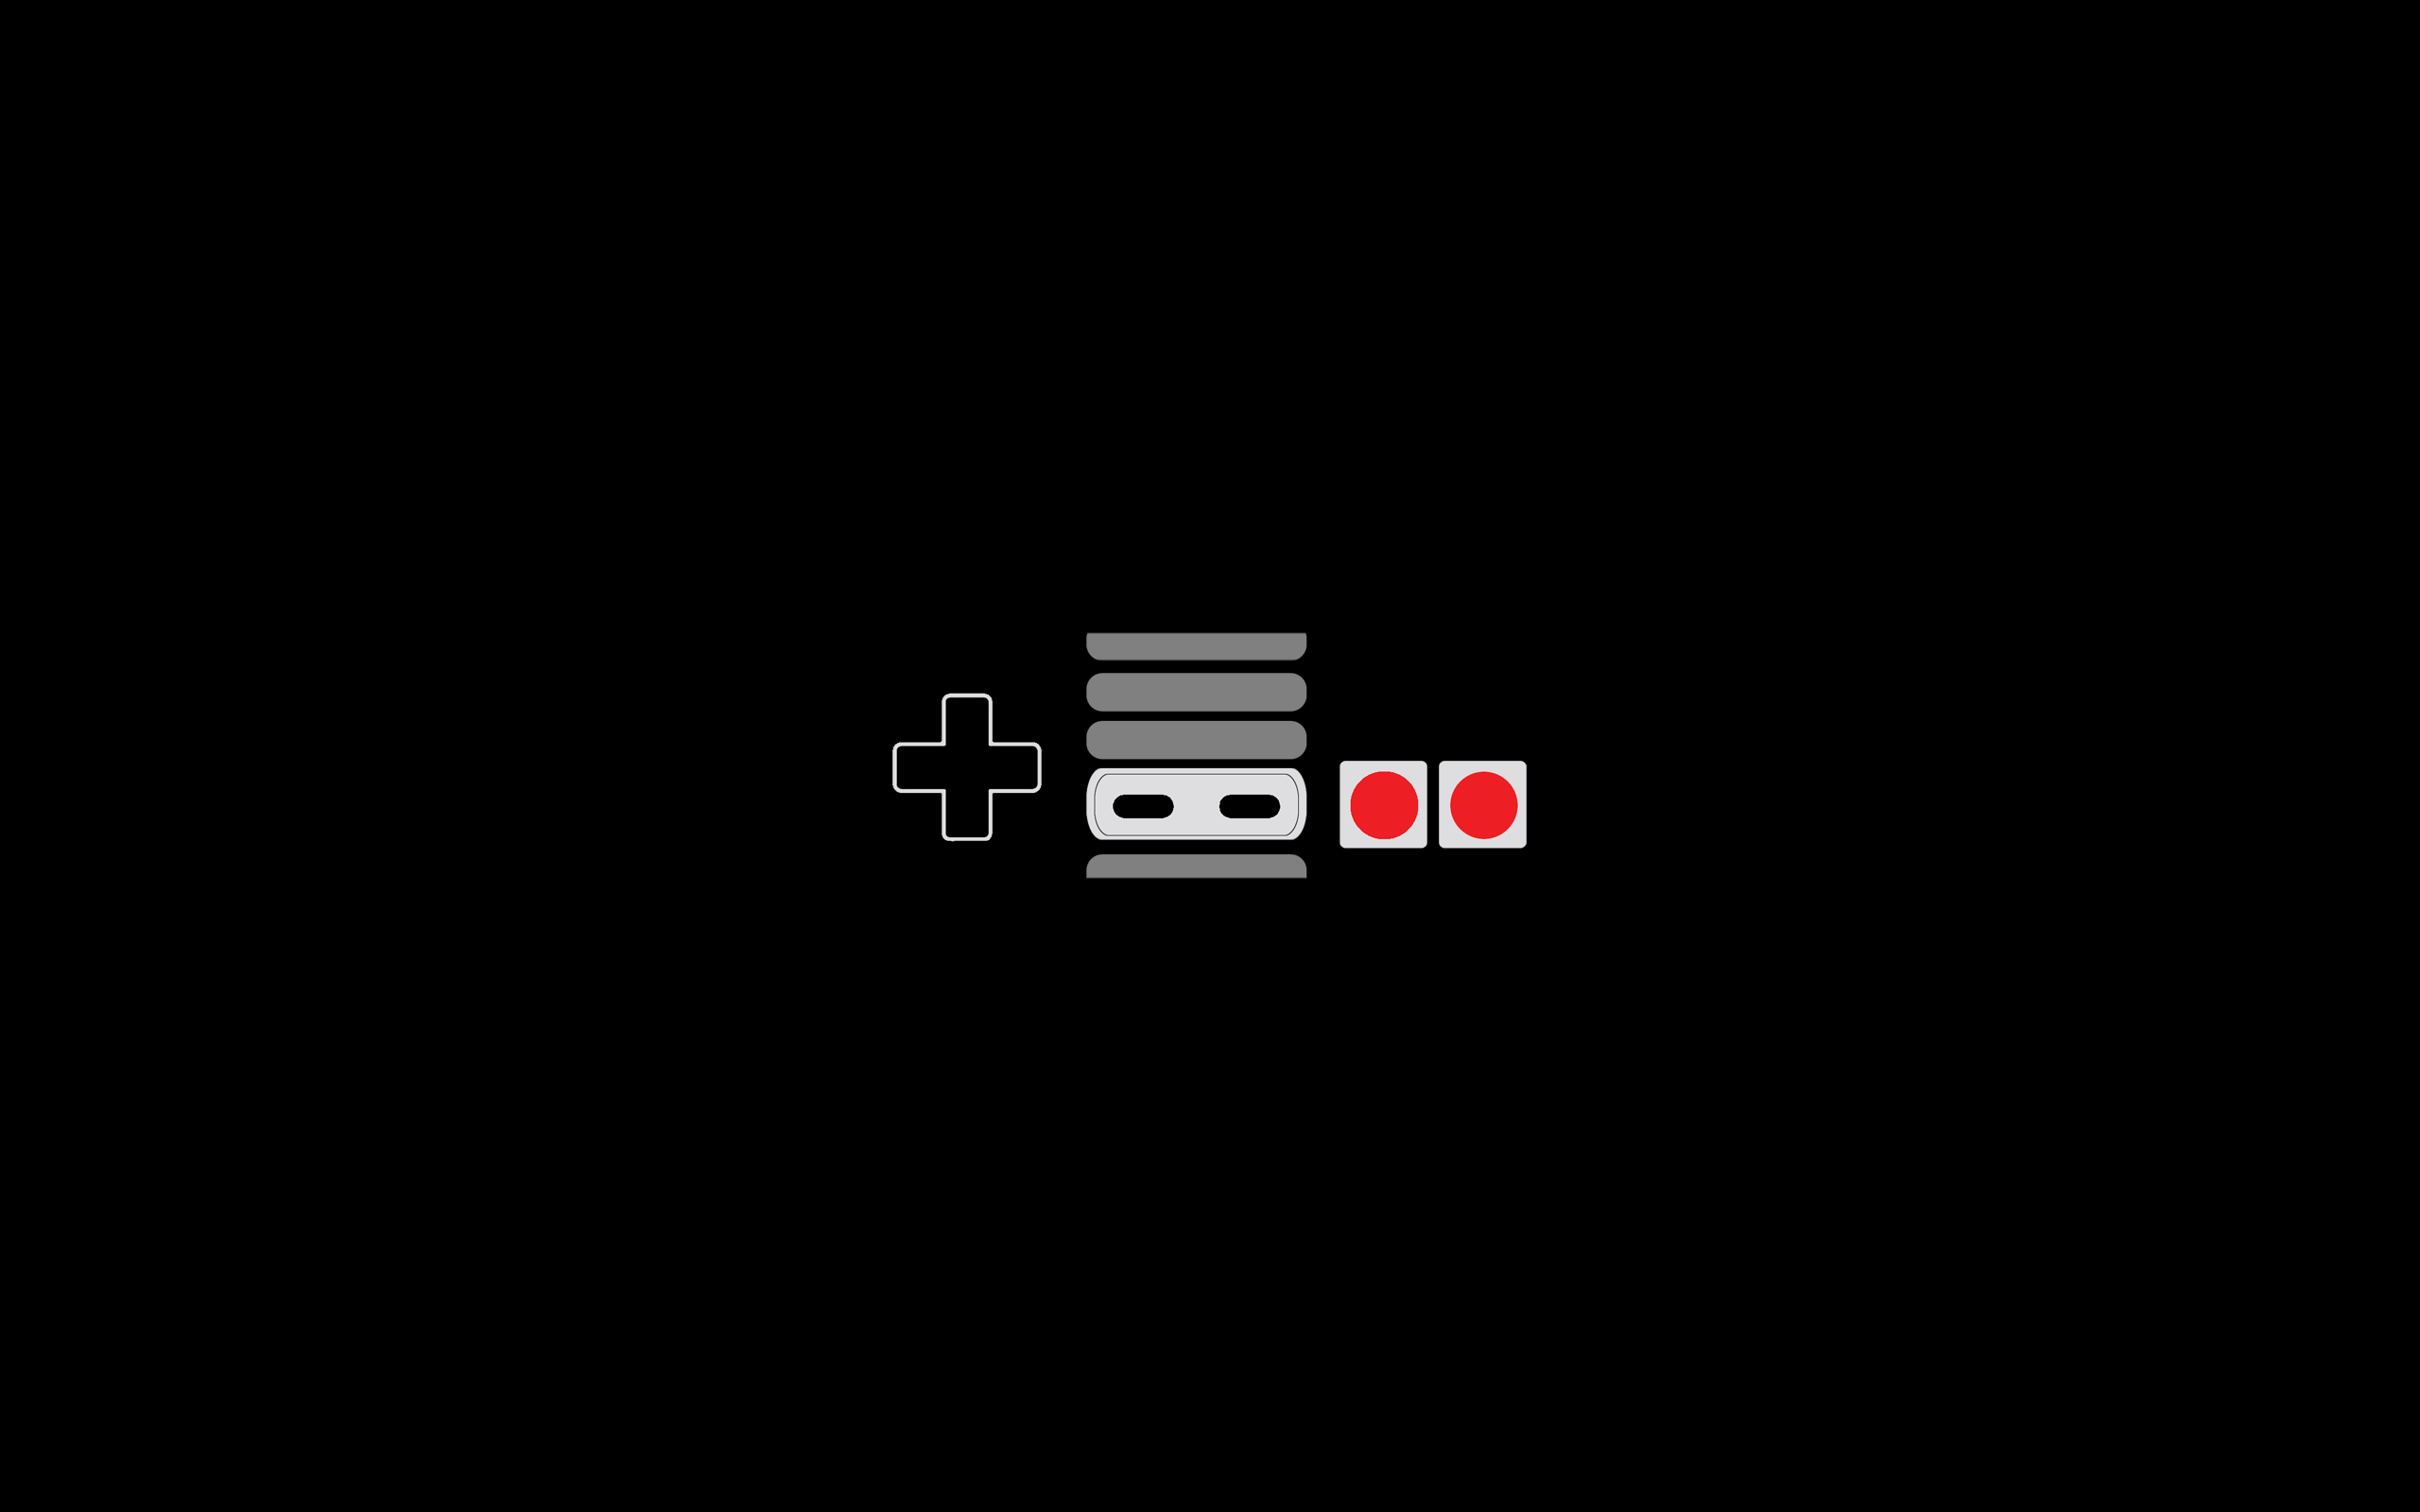 Wallpapers For > Nintendo Controller Wallpaper